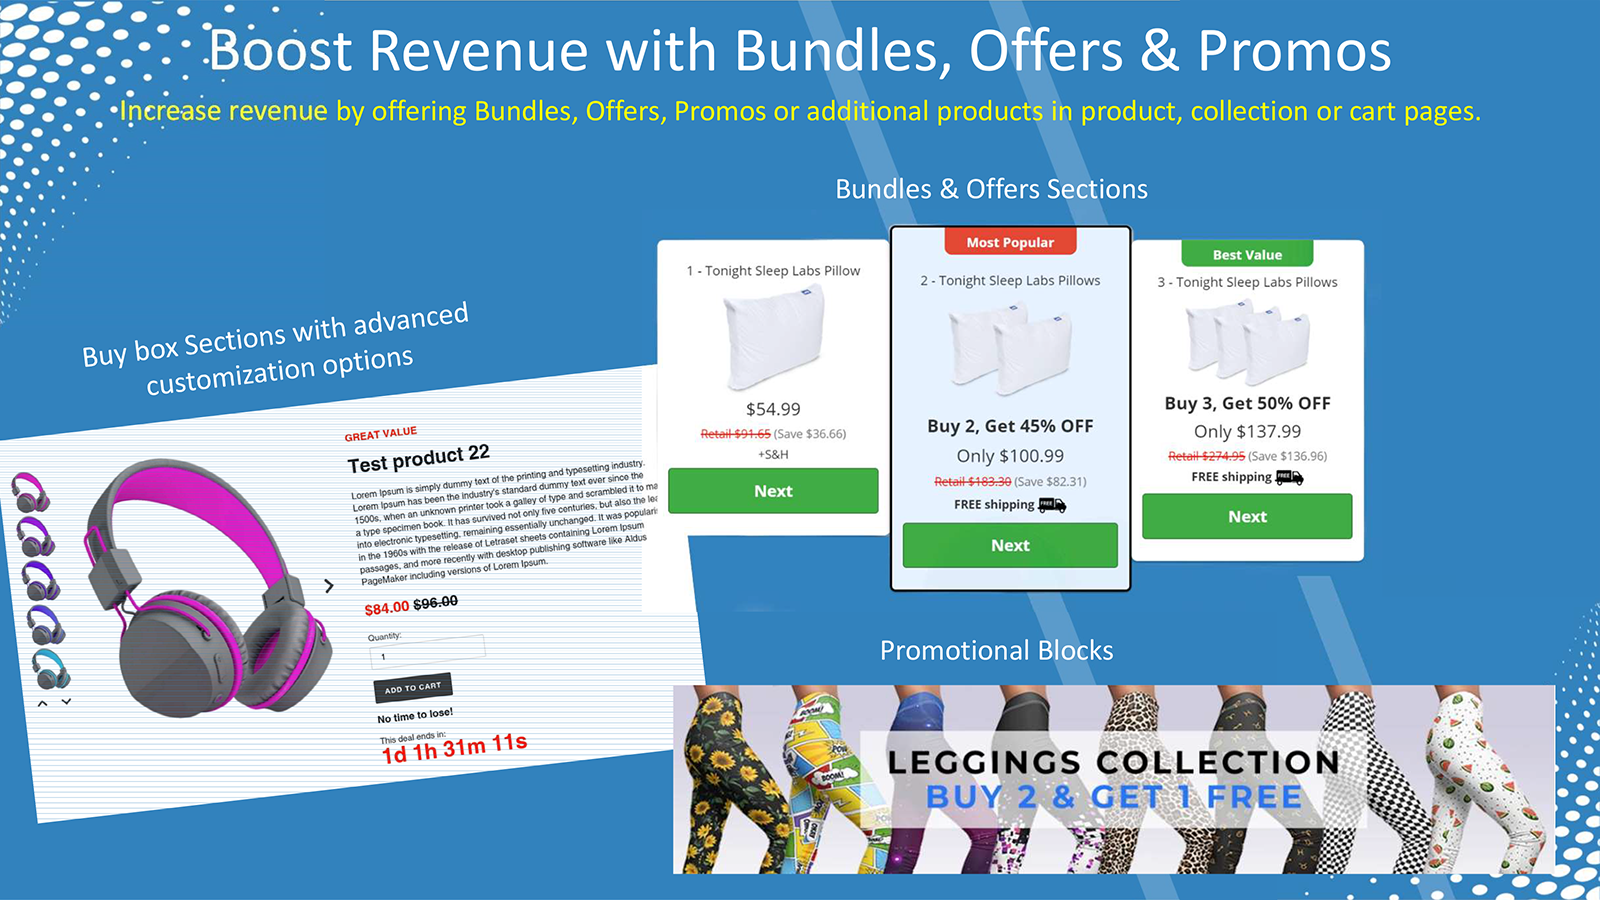 Boost Revenue with Bundles, Offers & Promos